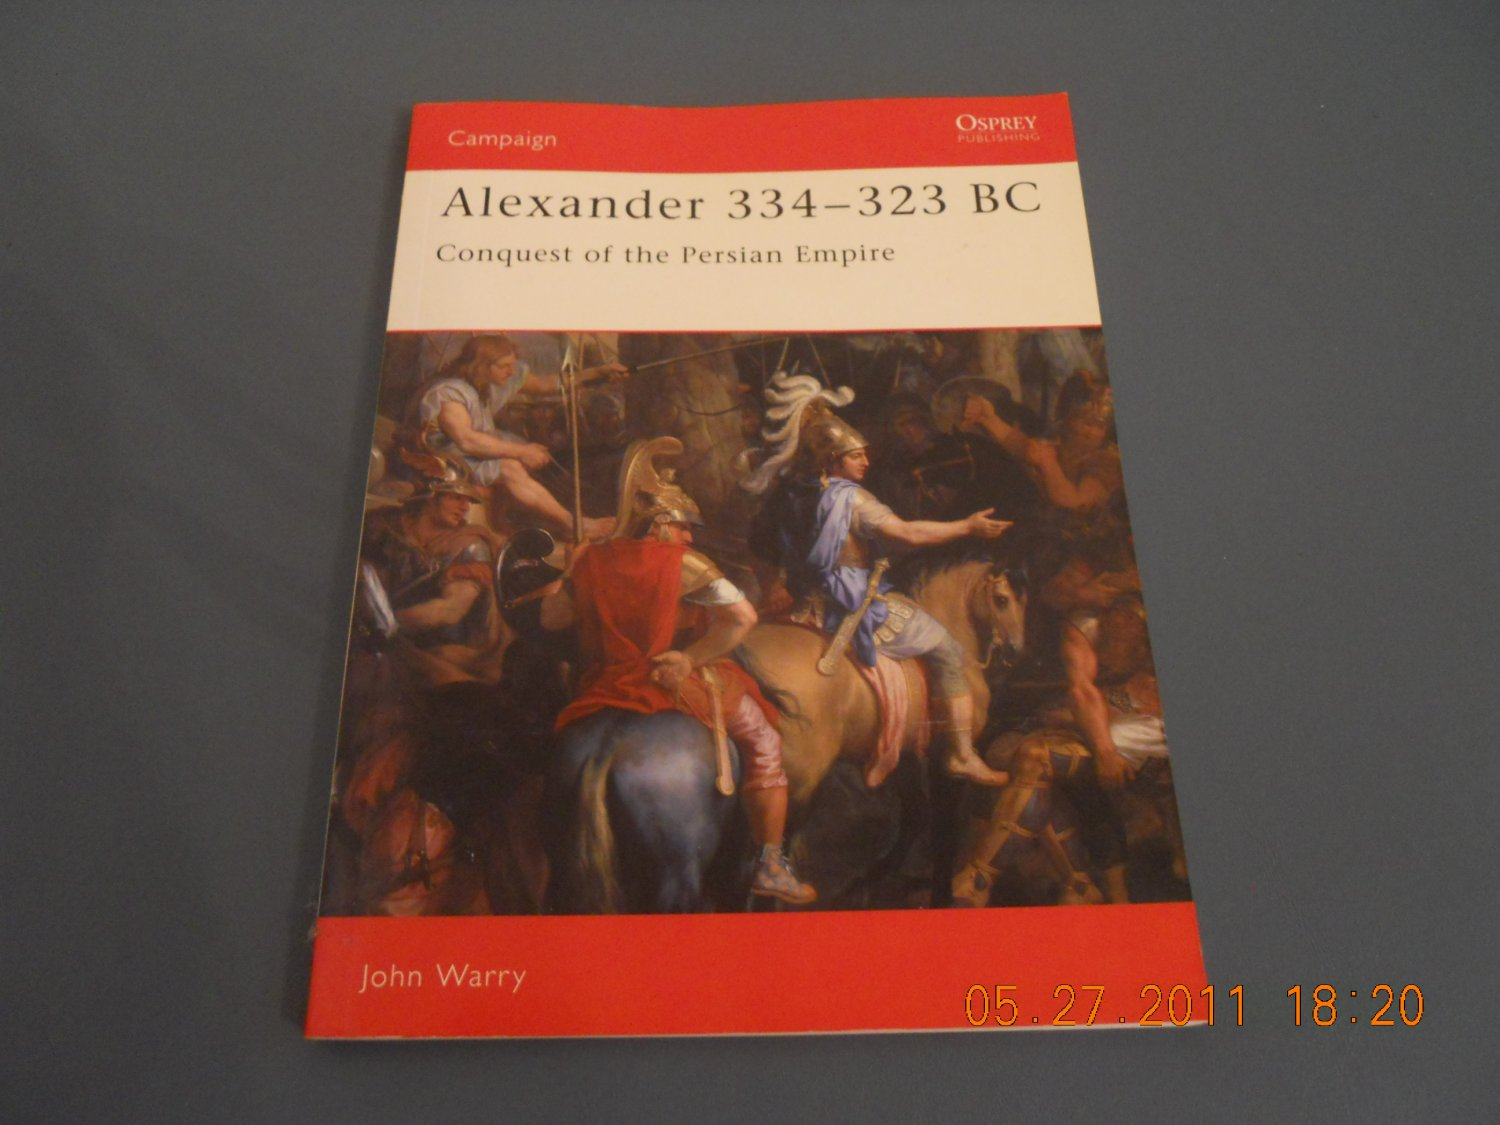 Alexander 334-323 Bc: Conquest of the Persian Empire paperback book